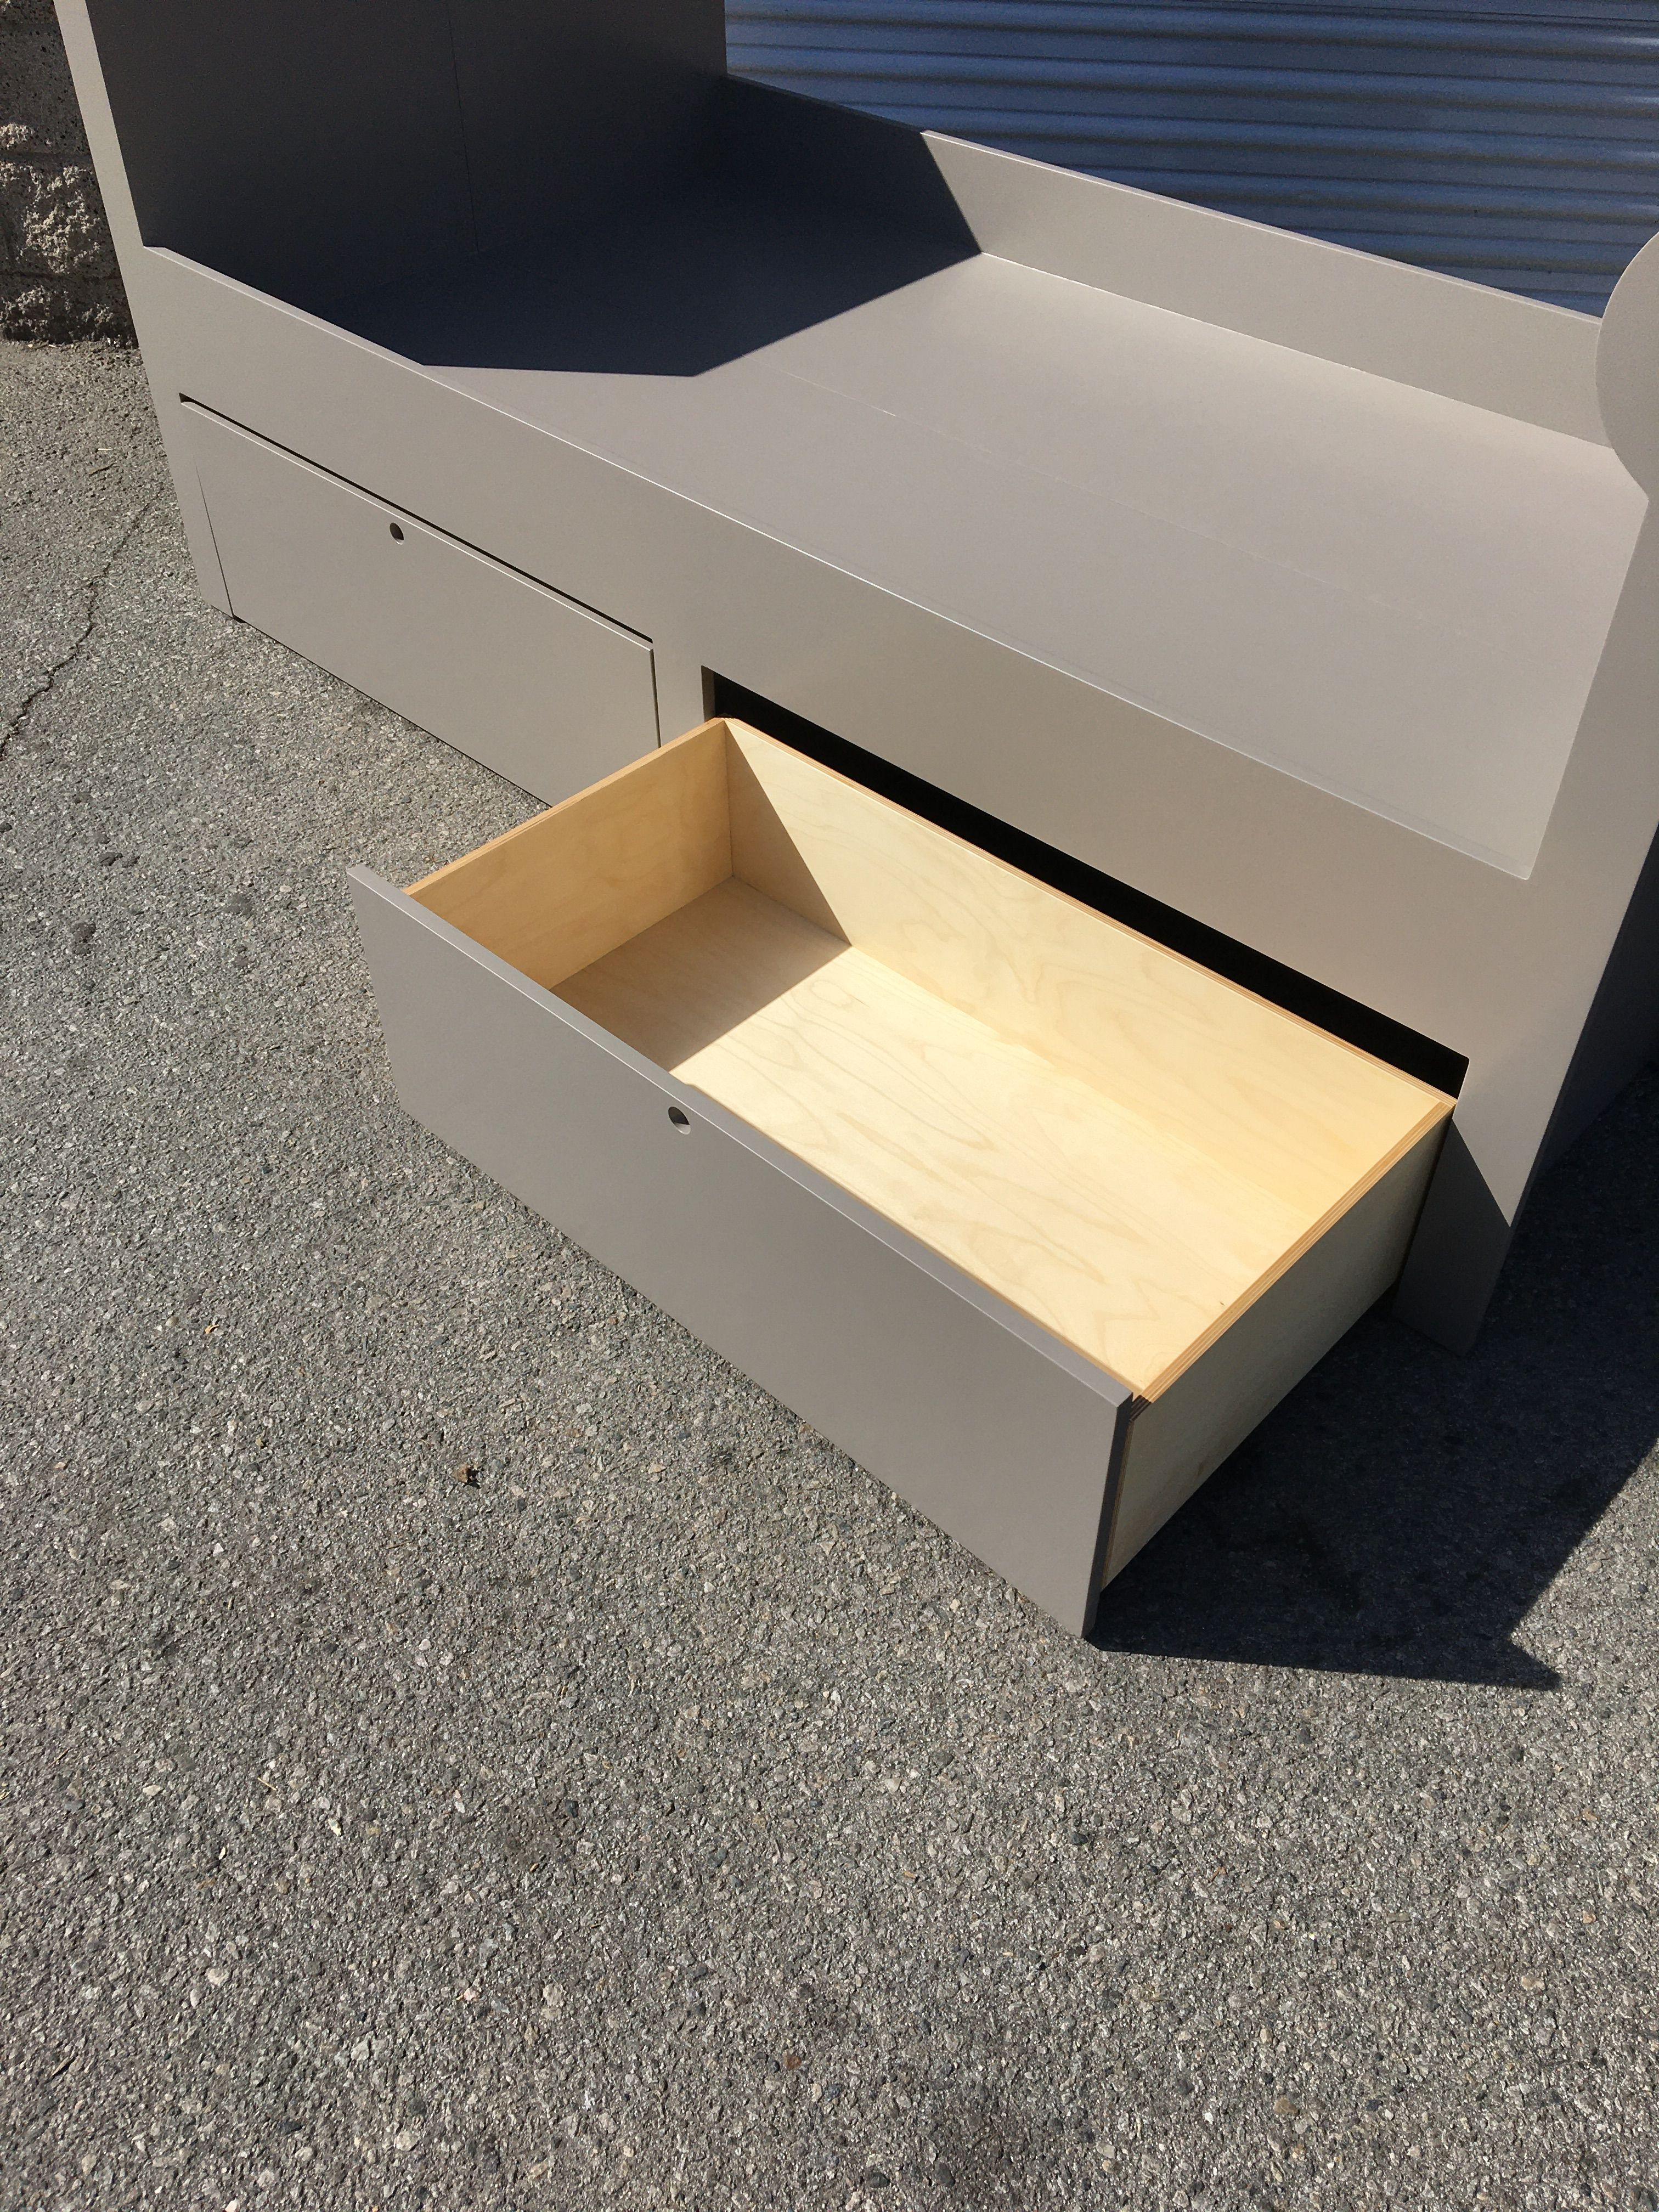 Cylinder Bed - Drawers product image 5